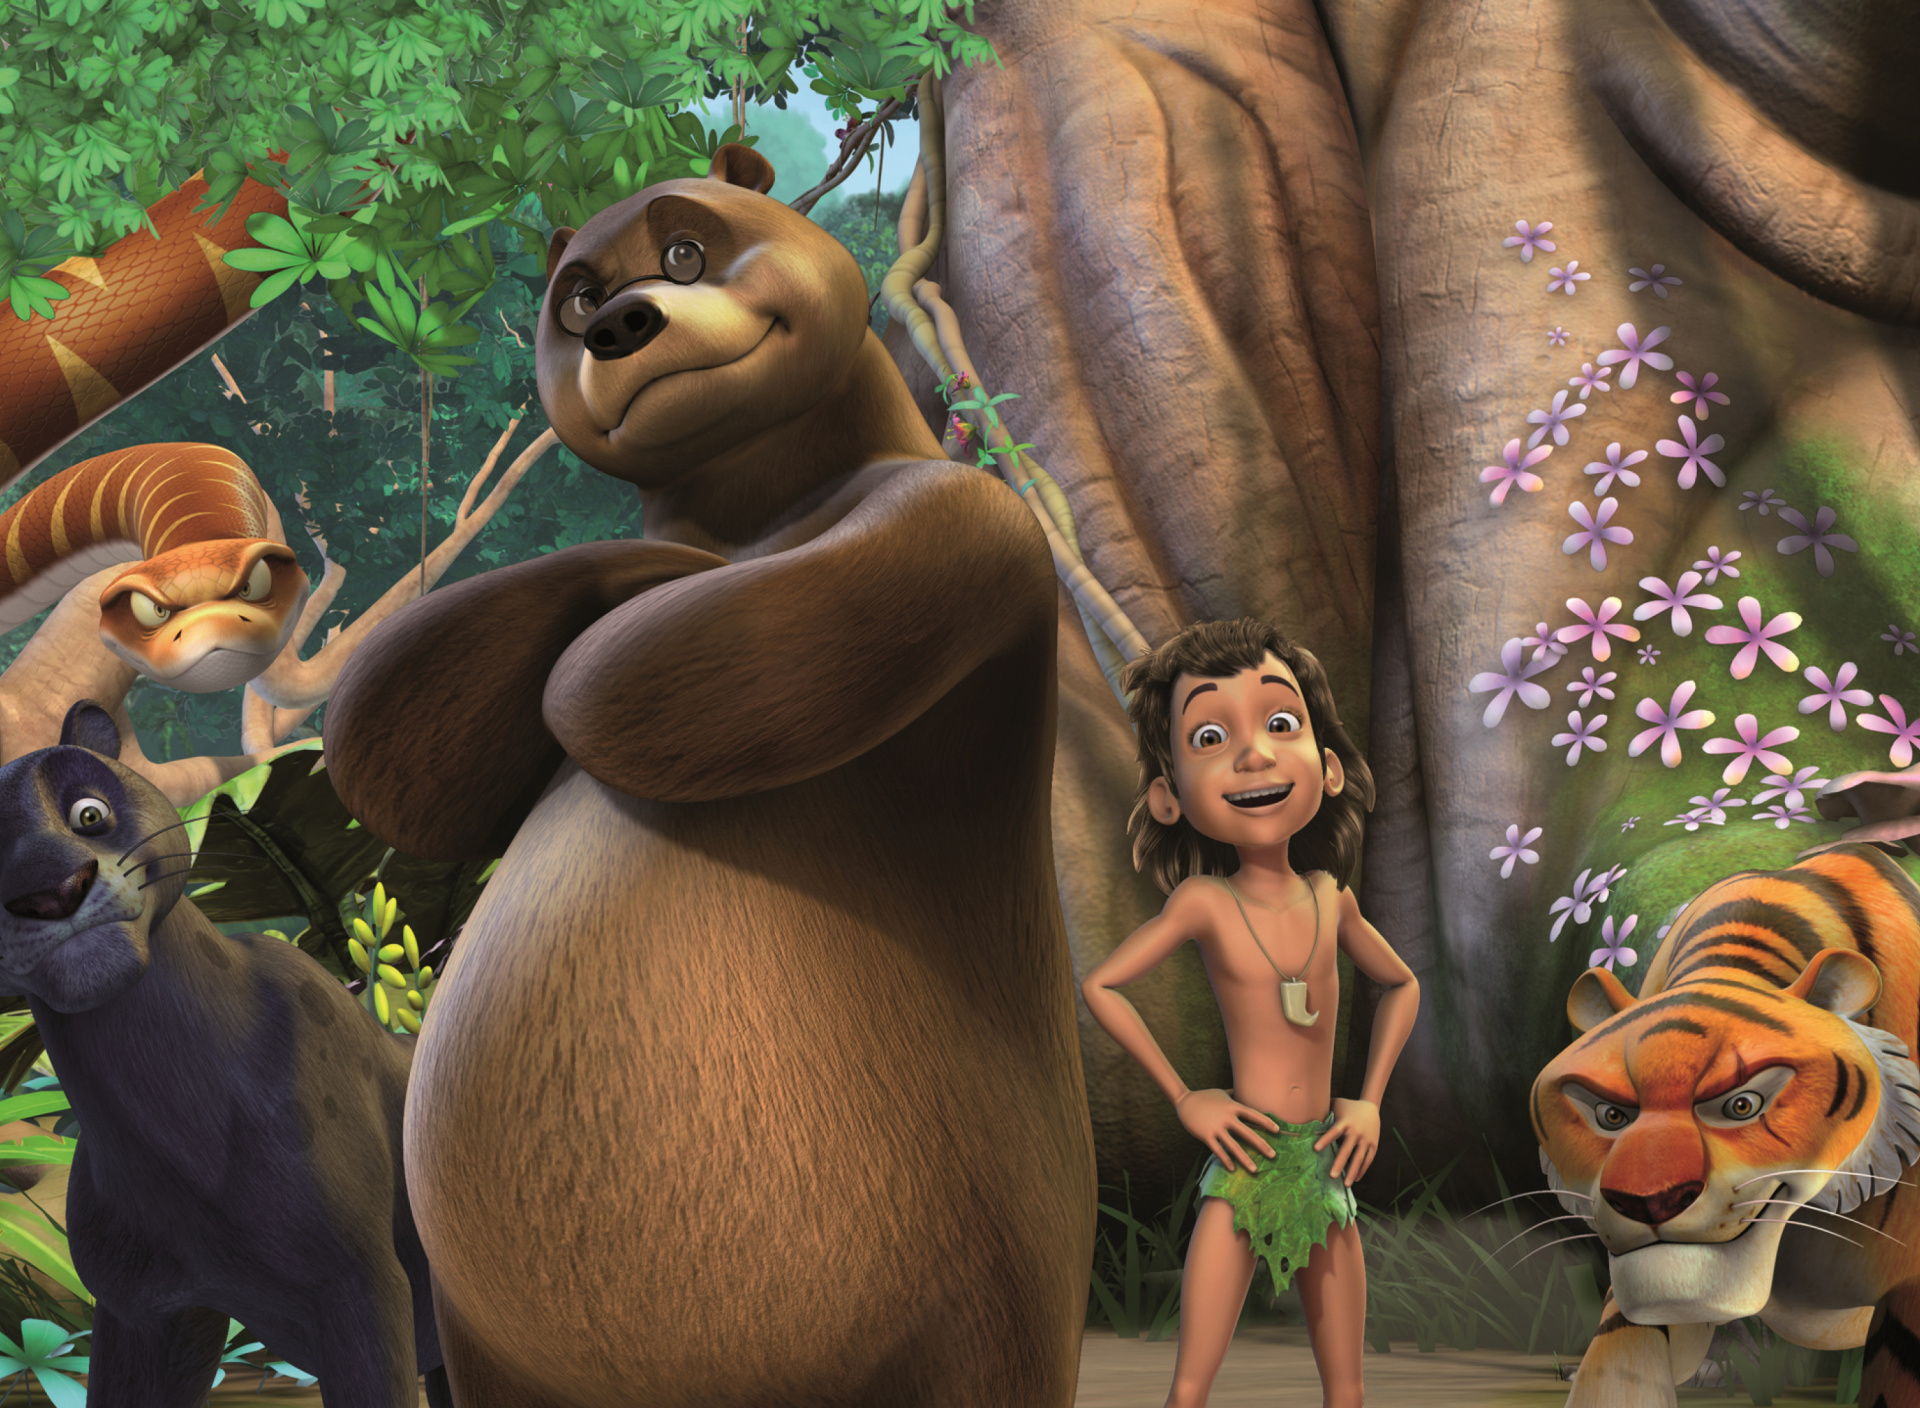 Sfondi The Jungle Book 1920x1408